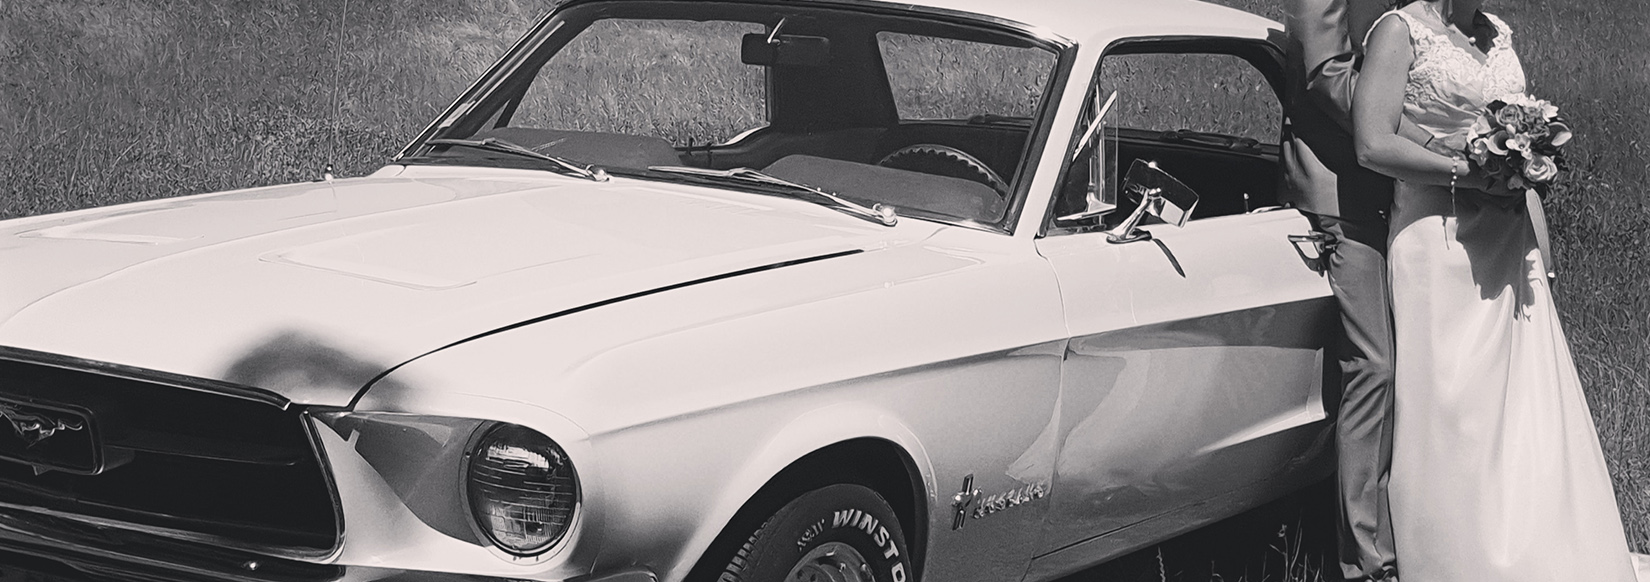 Ford mustang 1967 pour mariage a la rochelle